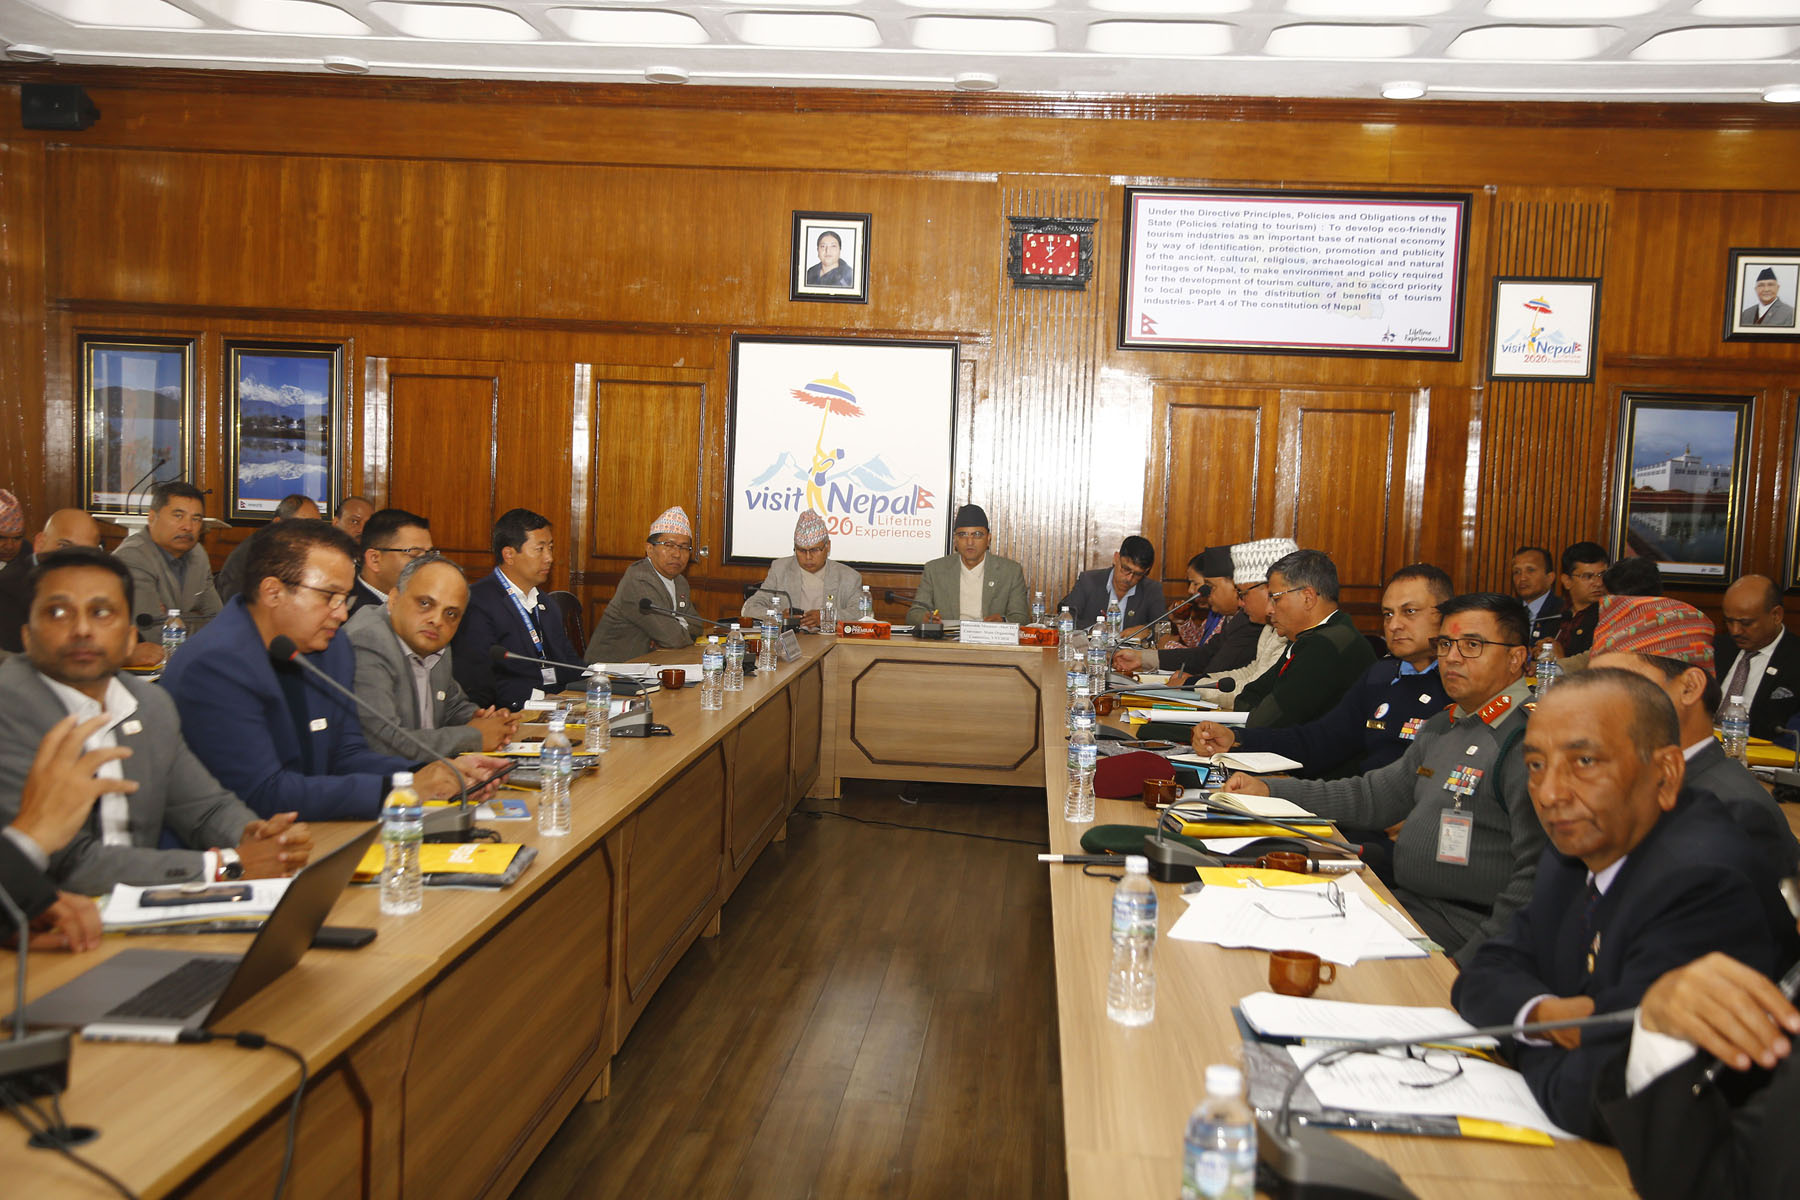 Fifth Meeting of VNY 2020 Main Programme Committee in Kathmandu